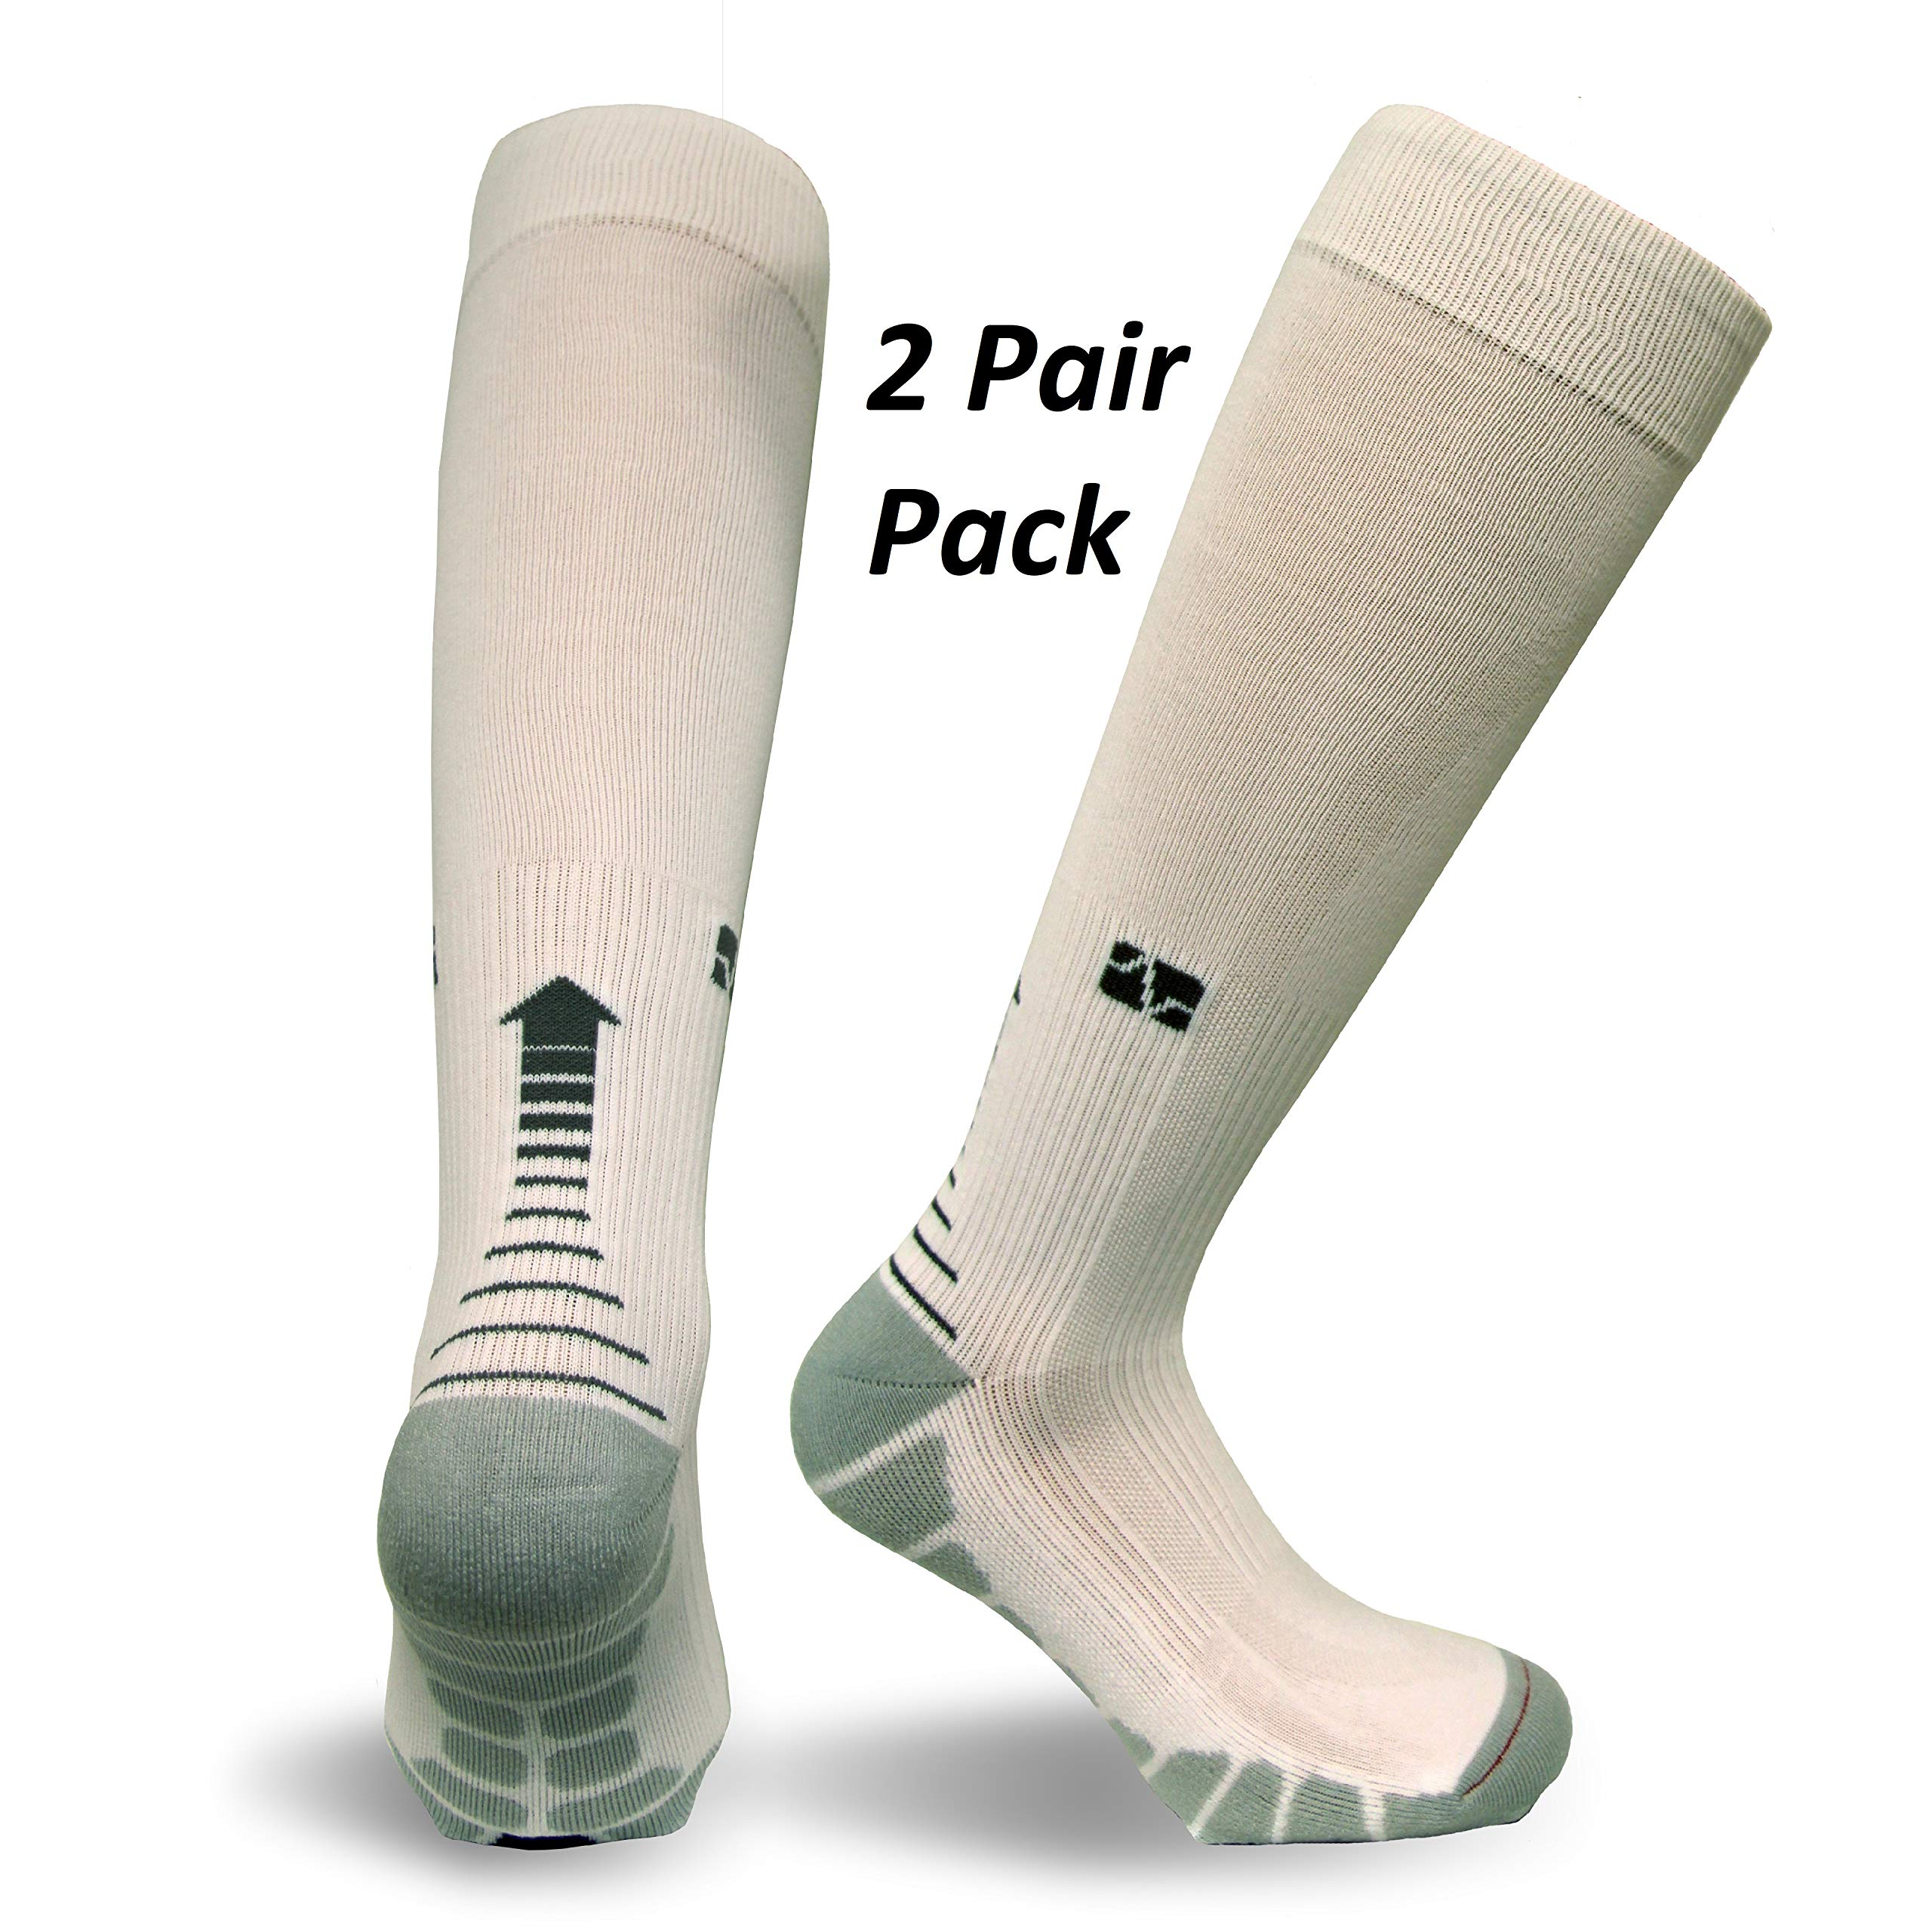 Vitalsox Silver Drystat Graduated Compression Socks (2 Pack), White/White, X-Small